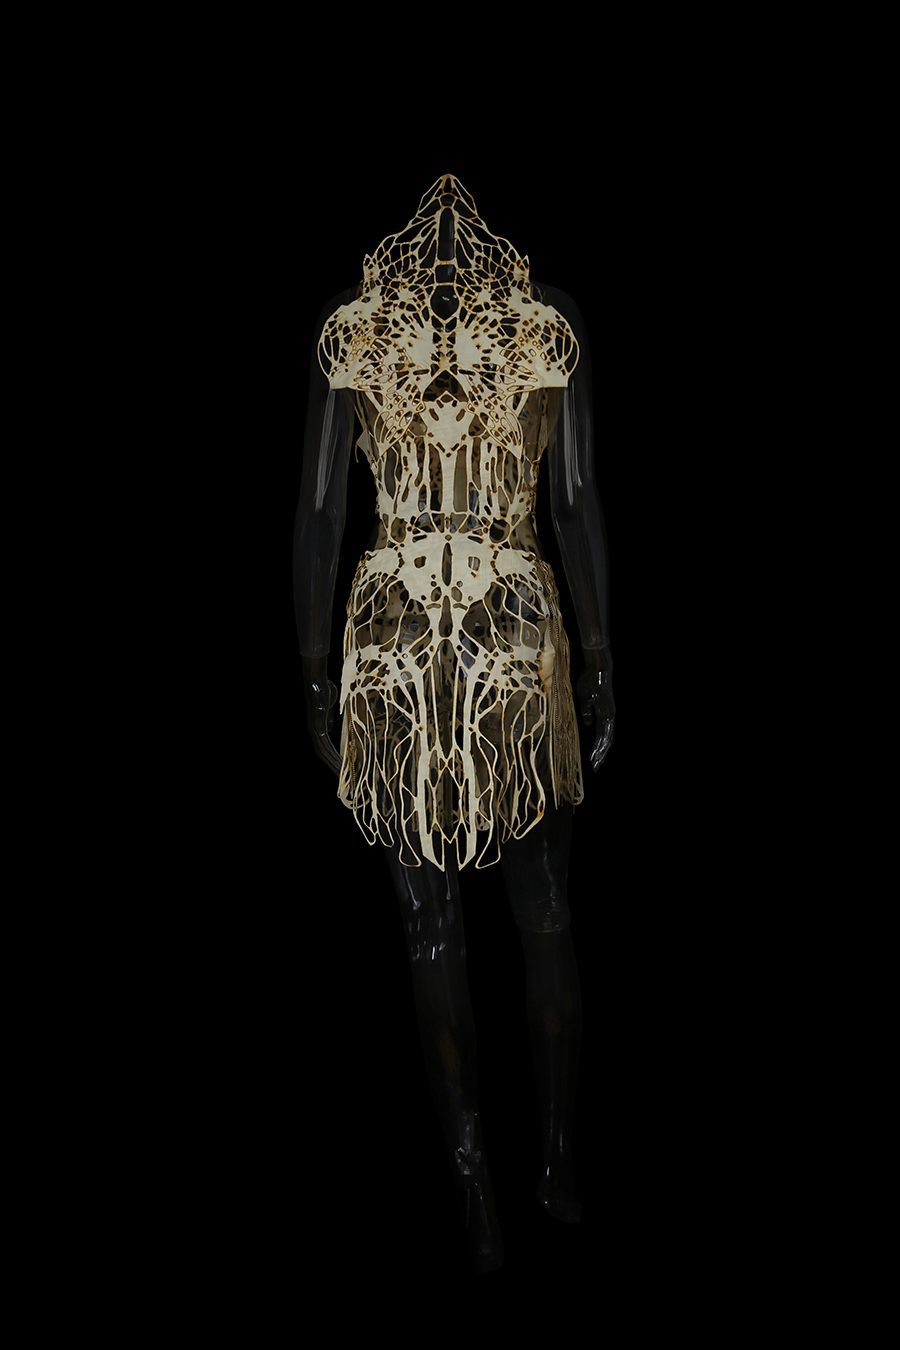 2017-Amy-Karle-Internal-Collection-cream-garment-based-on-tendons-and-ligaments-v1-04